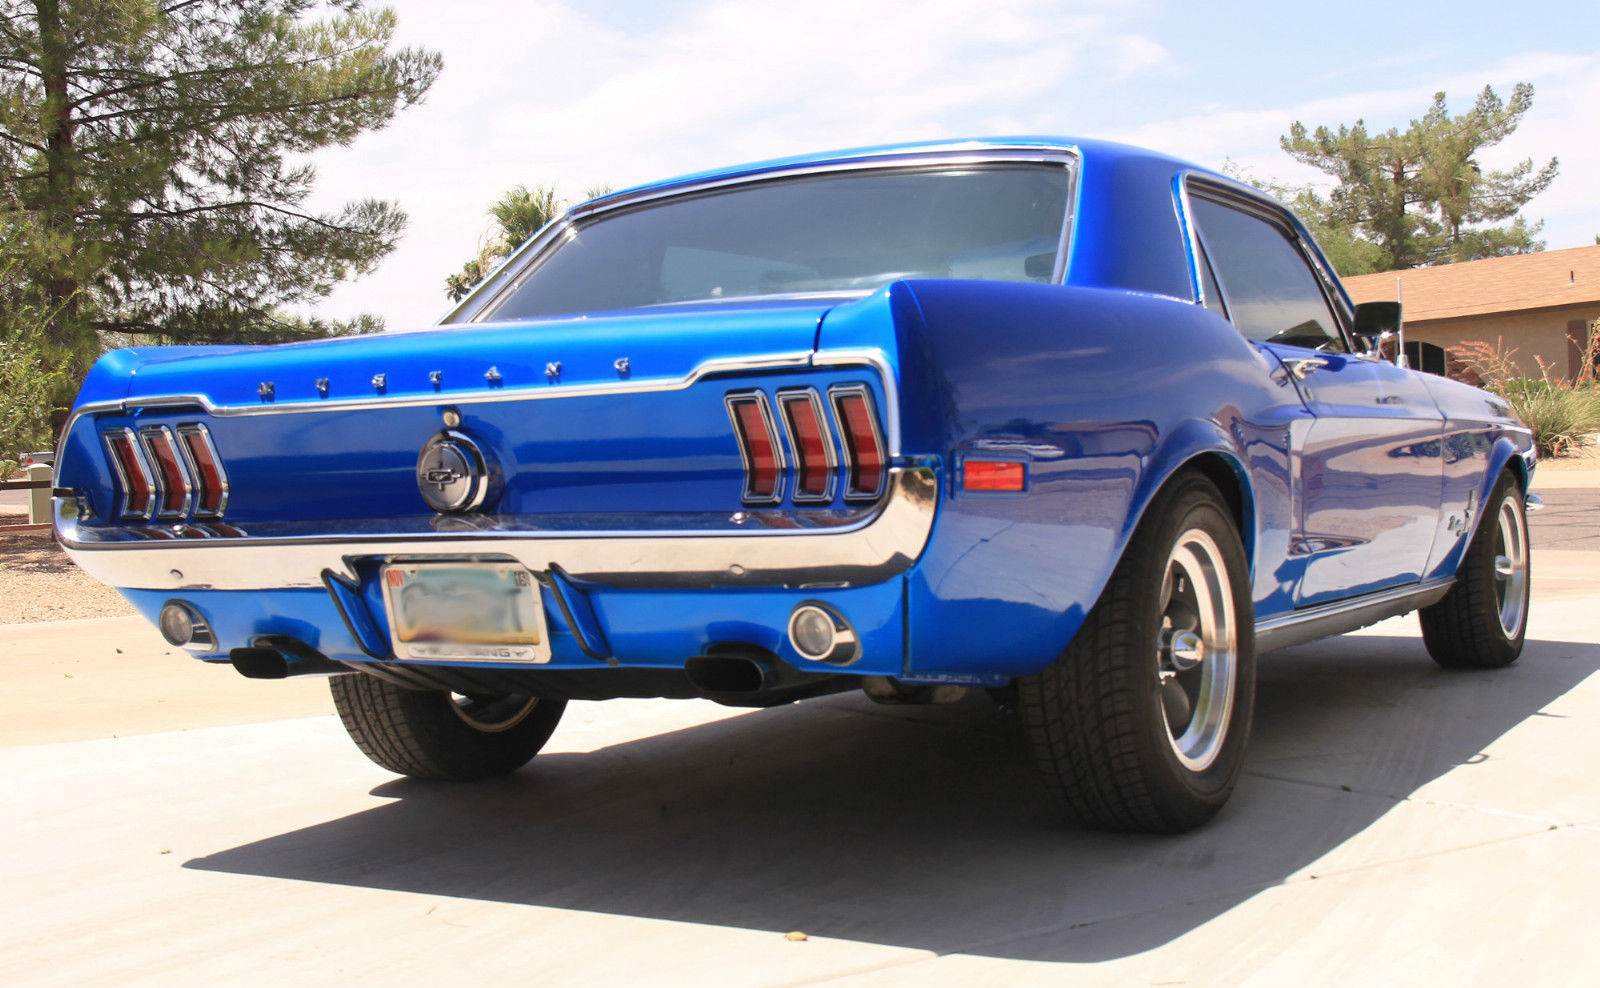 1968 68 ford mustang coupe 347 420hp classic custom hot rod v8 automatic arizona